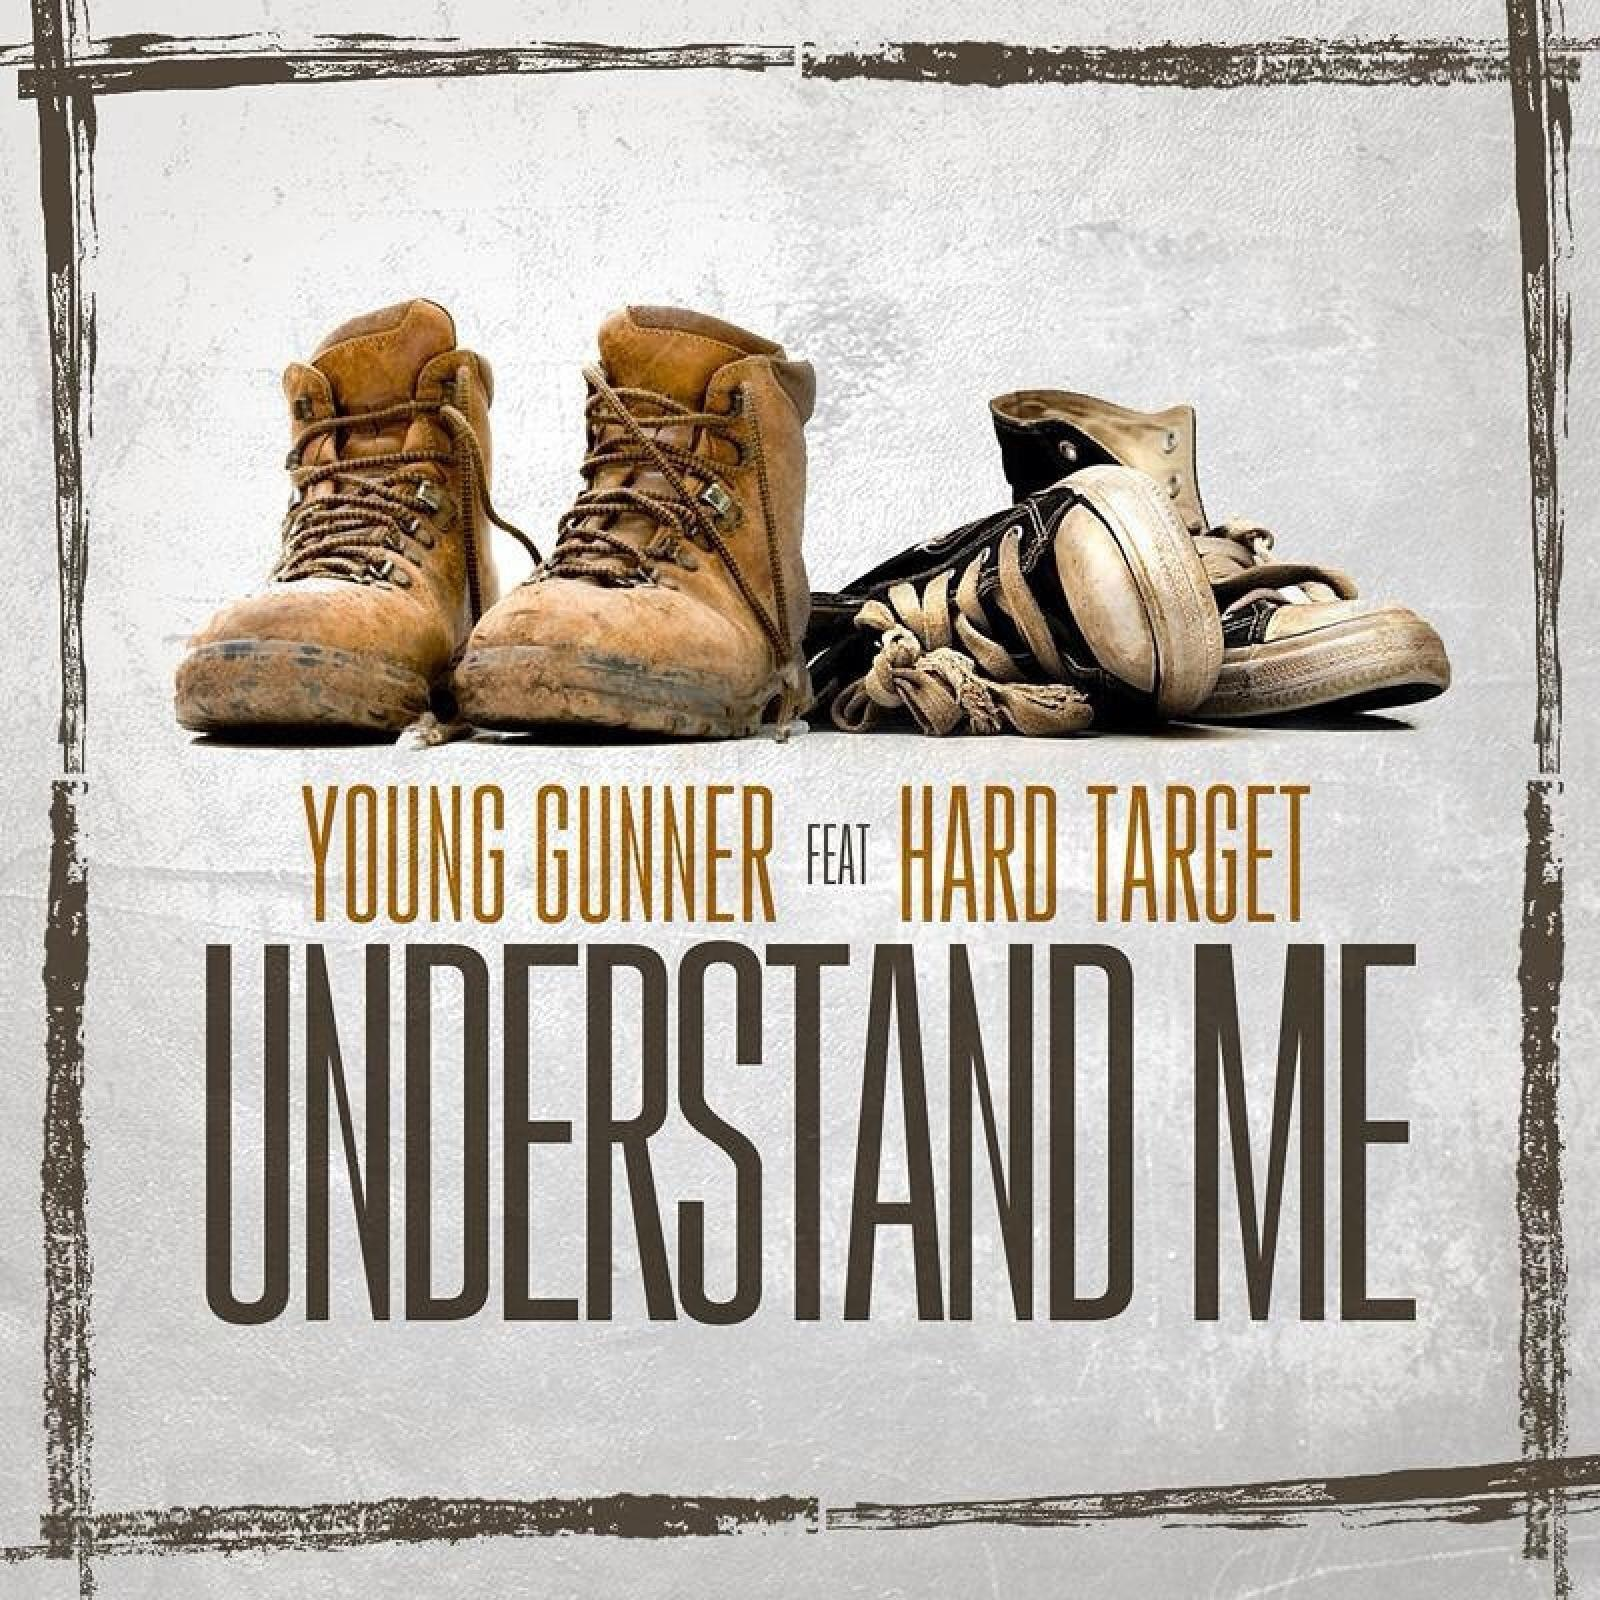 Understand Me (feat. Hard Target) - Single